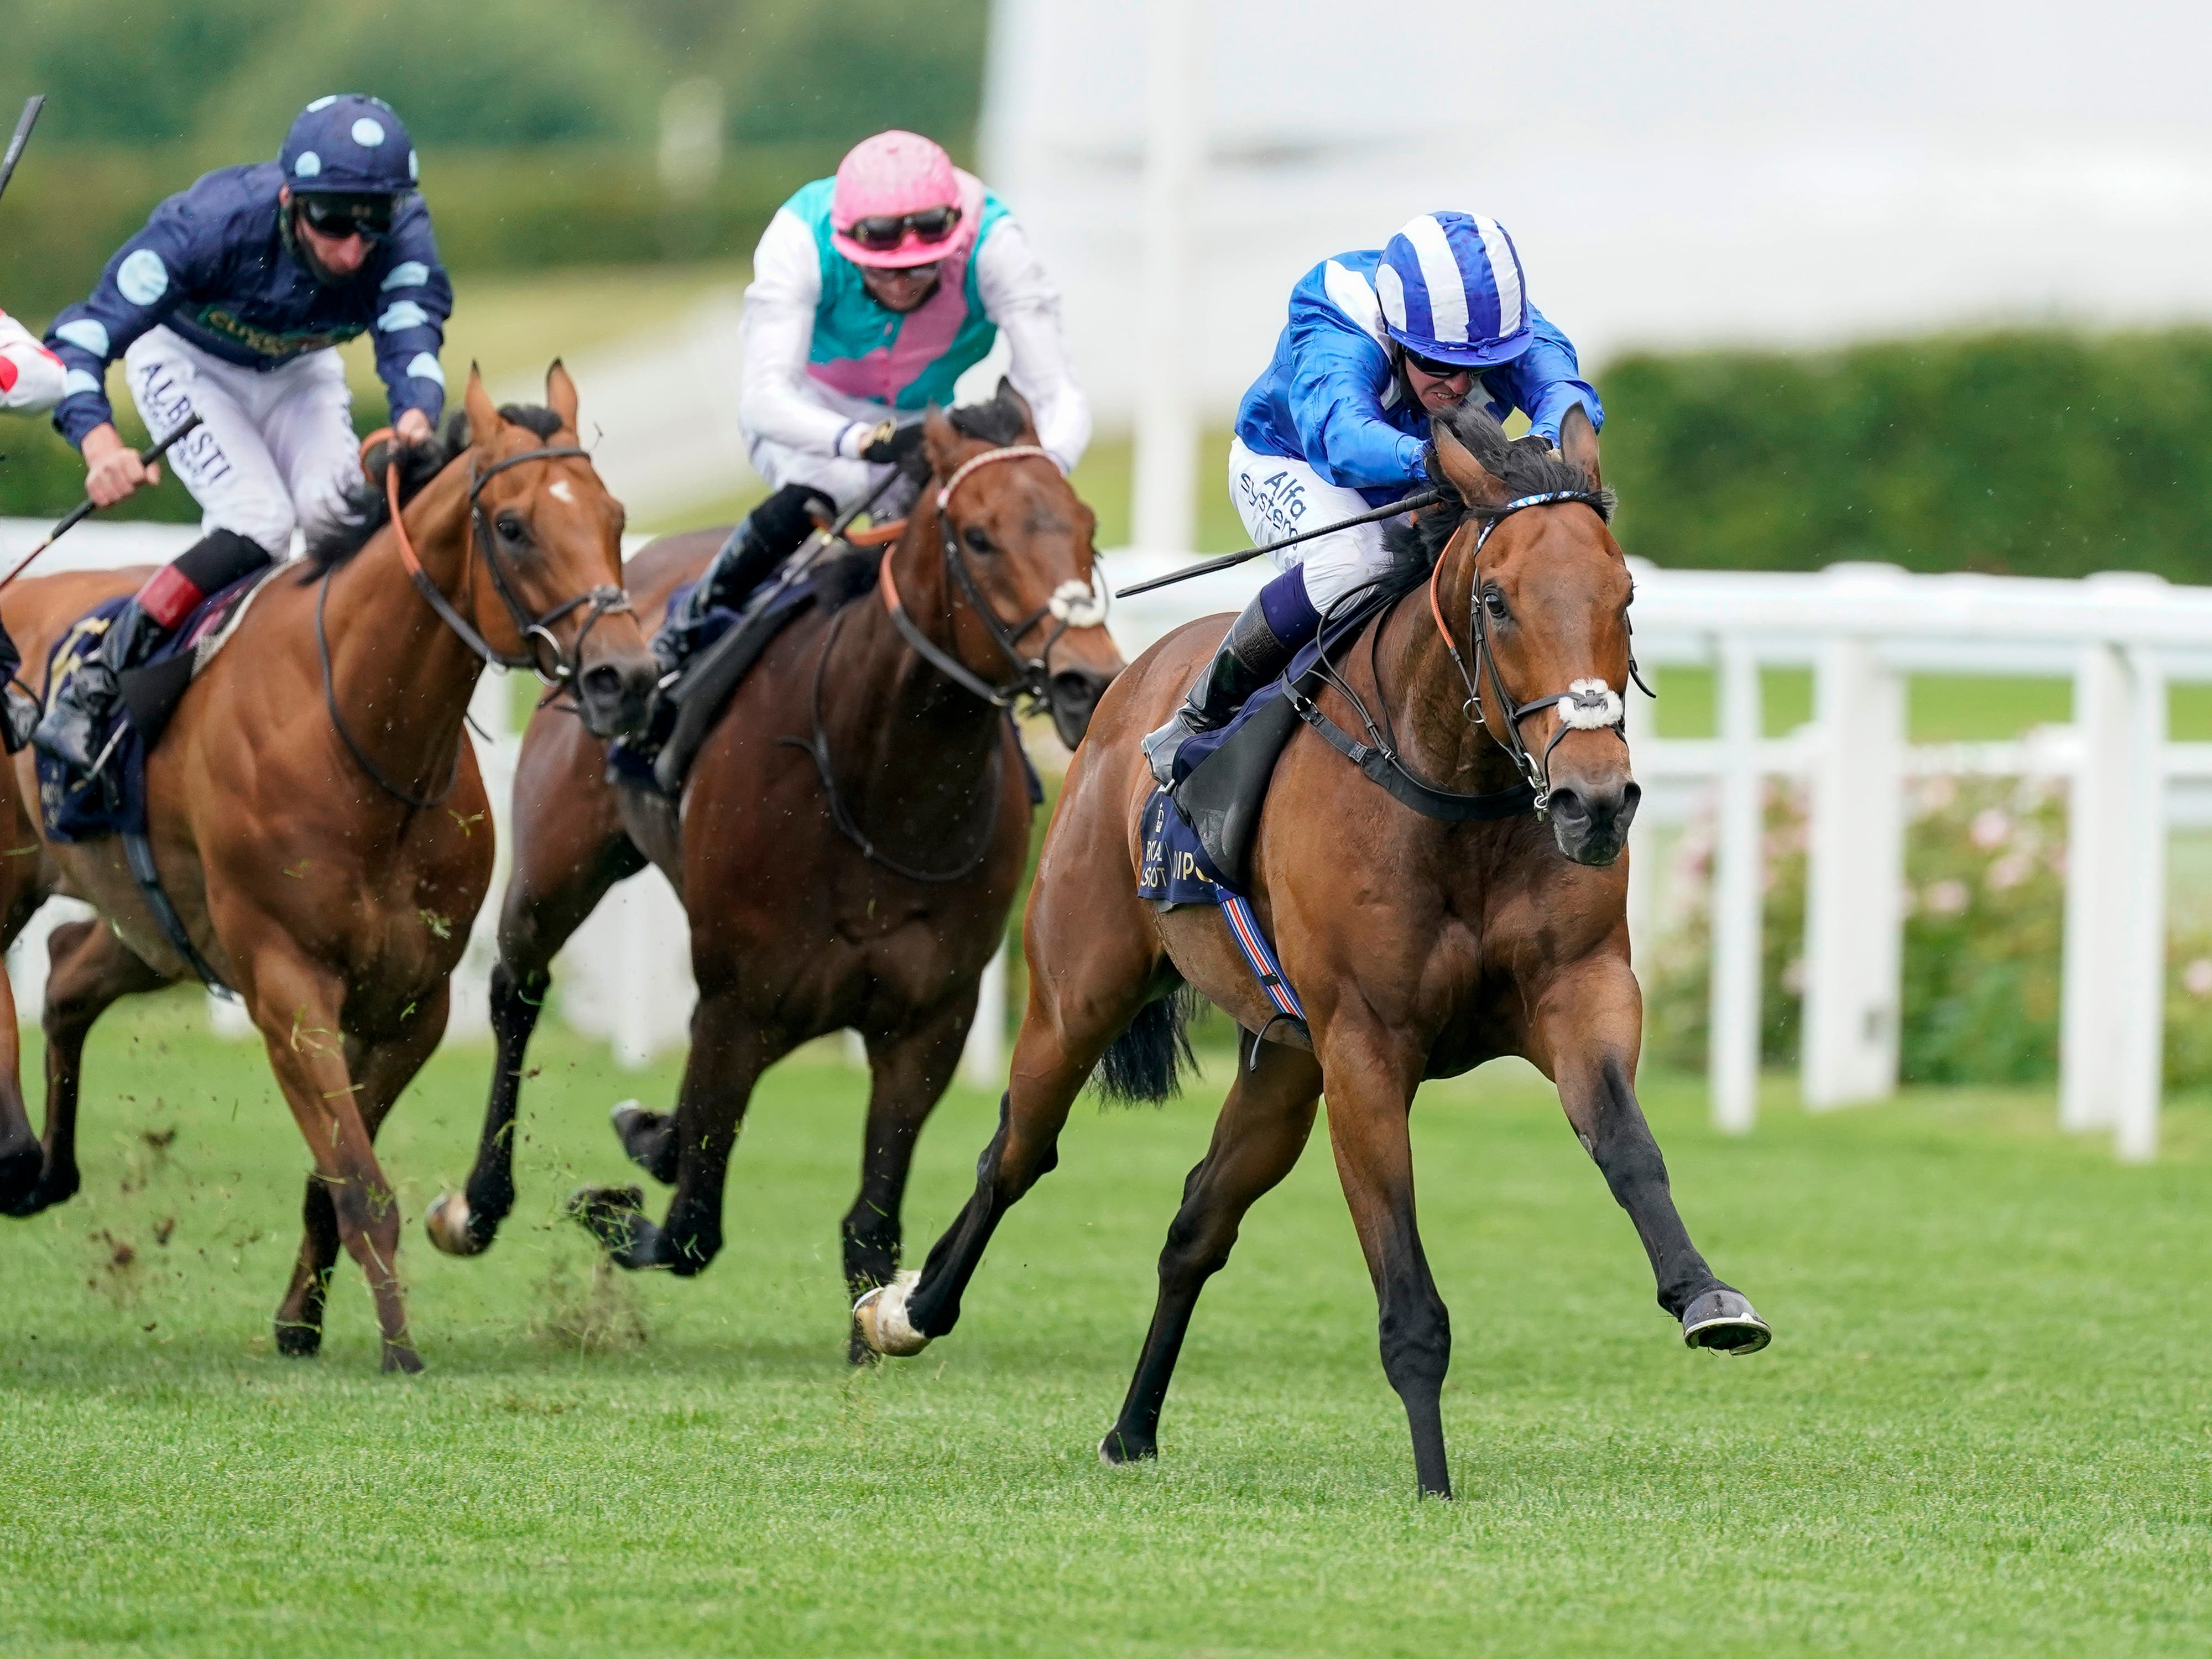 Battaash (right) strides to victory in the King's Stand Stakes at Royal Ascot in 2020 (Alan Crowhurst/PA)